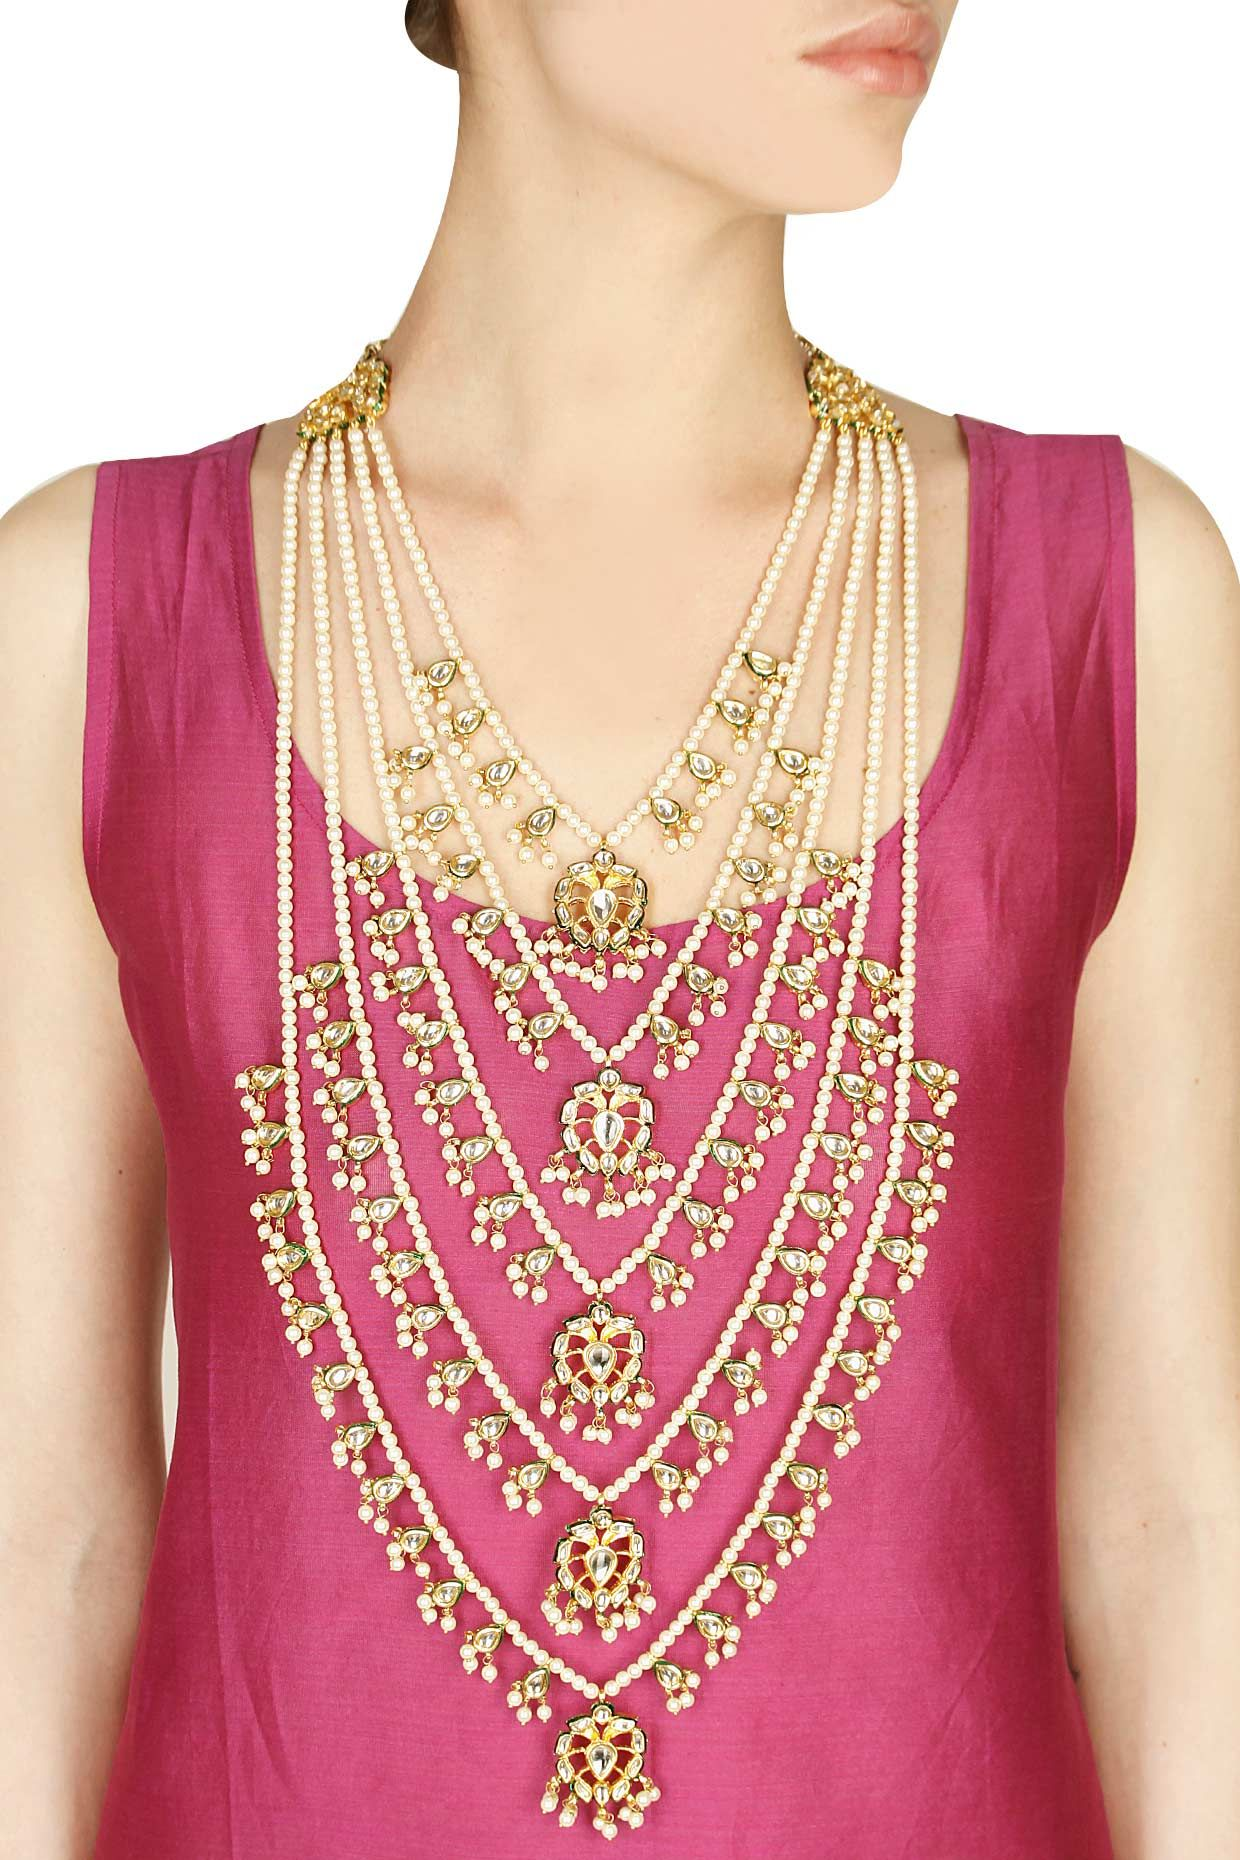 Gold Finish Kundan Stone And Pearl Chain Multi Strands Necklace Available  Only At Pernia's Pop